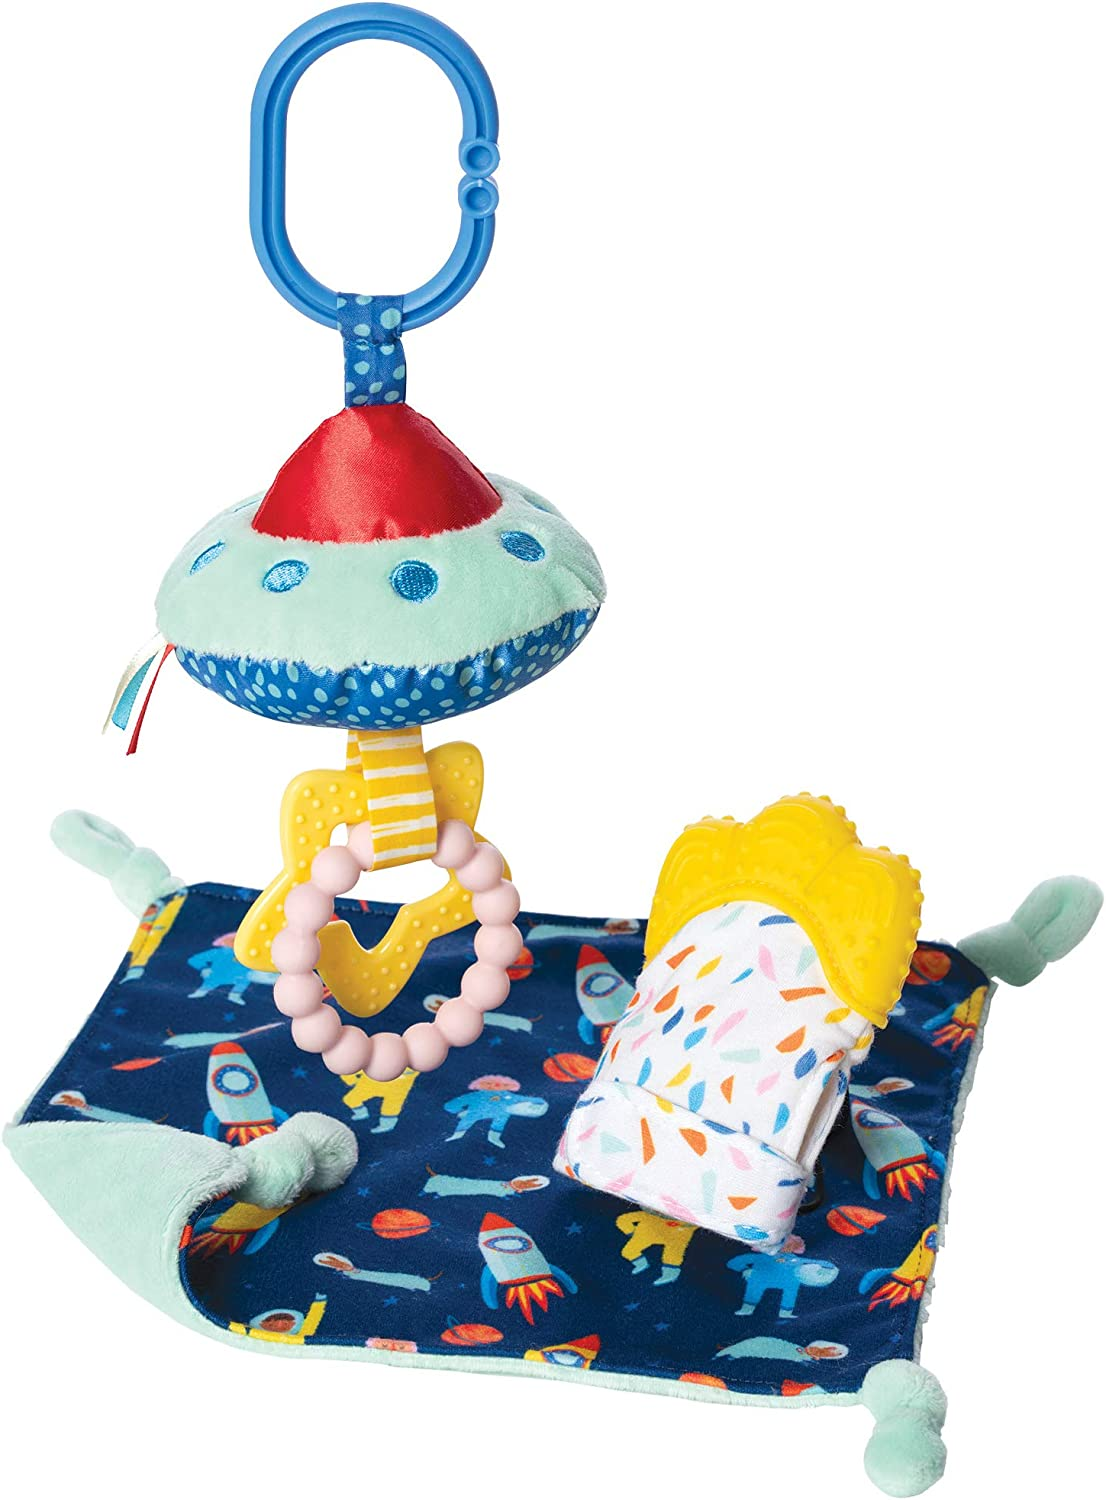 Manhattan Toy Space Themed Baby Gift Set with Silicone Teething Mitt, Soothing Baby Lovie & Clip-On Teether & Rattle